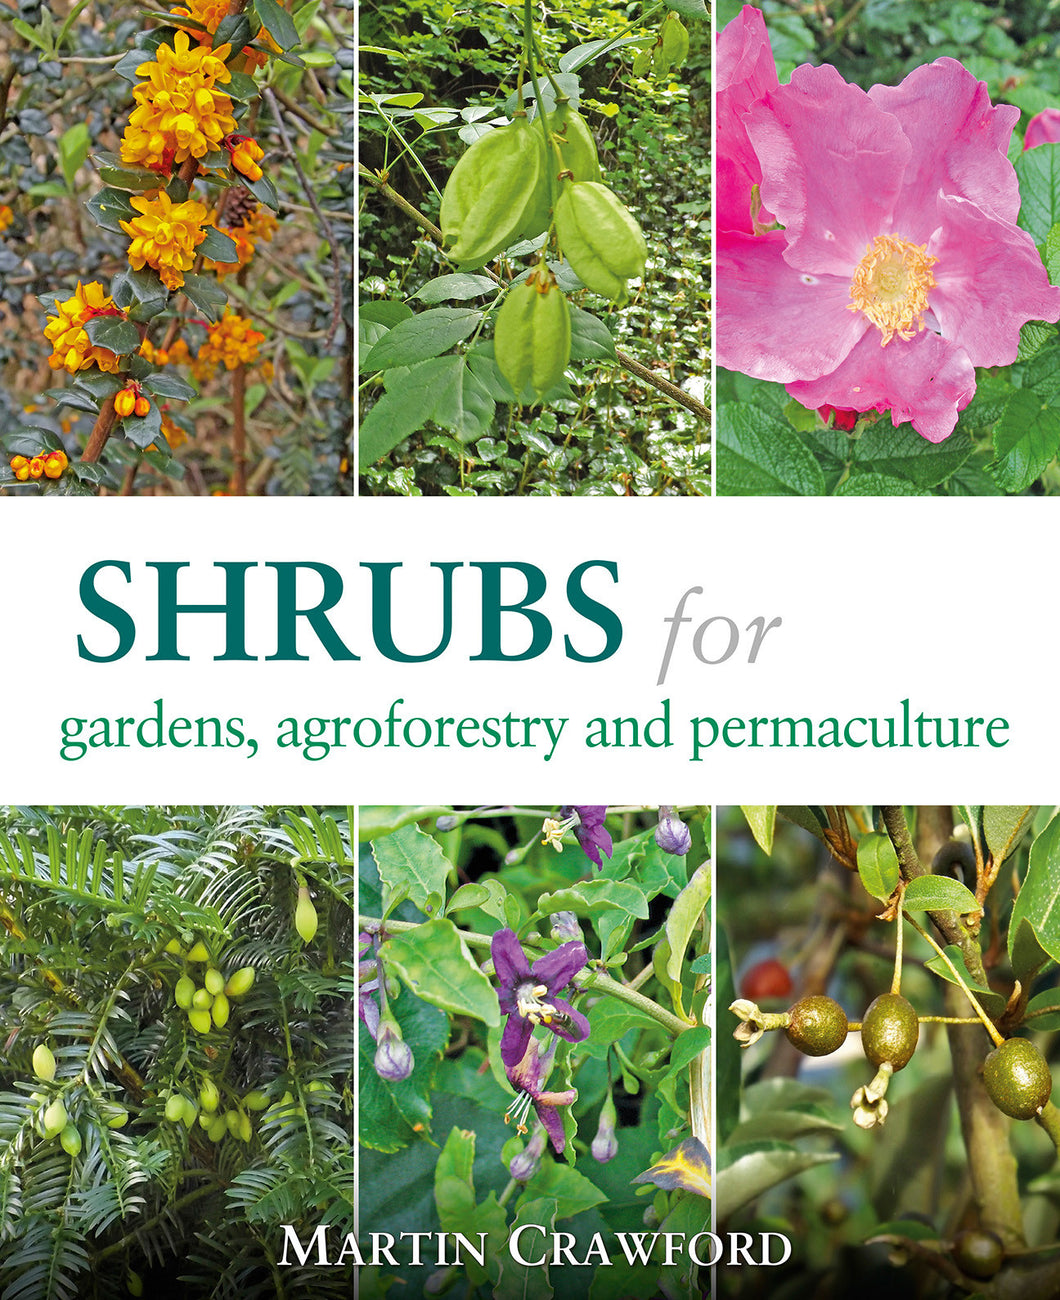 Shrubs for Gardens, Agroforestry, and Permaculture by Martin Crawford